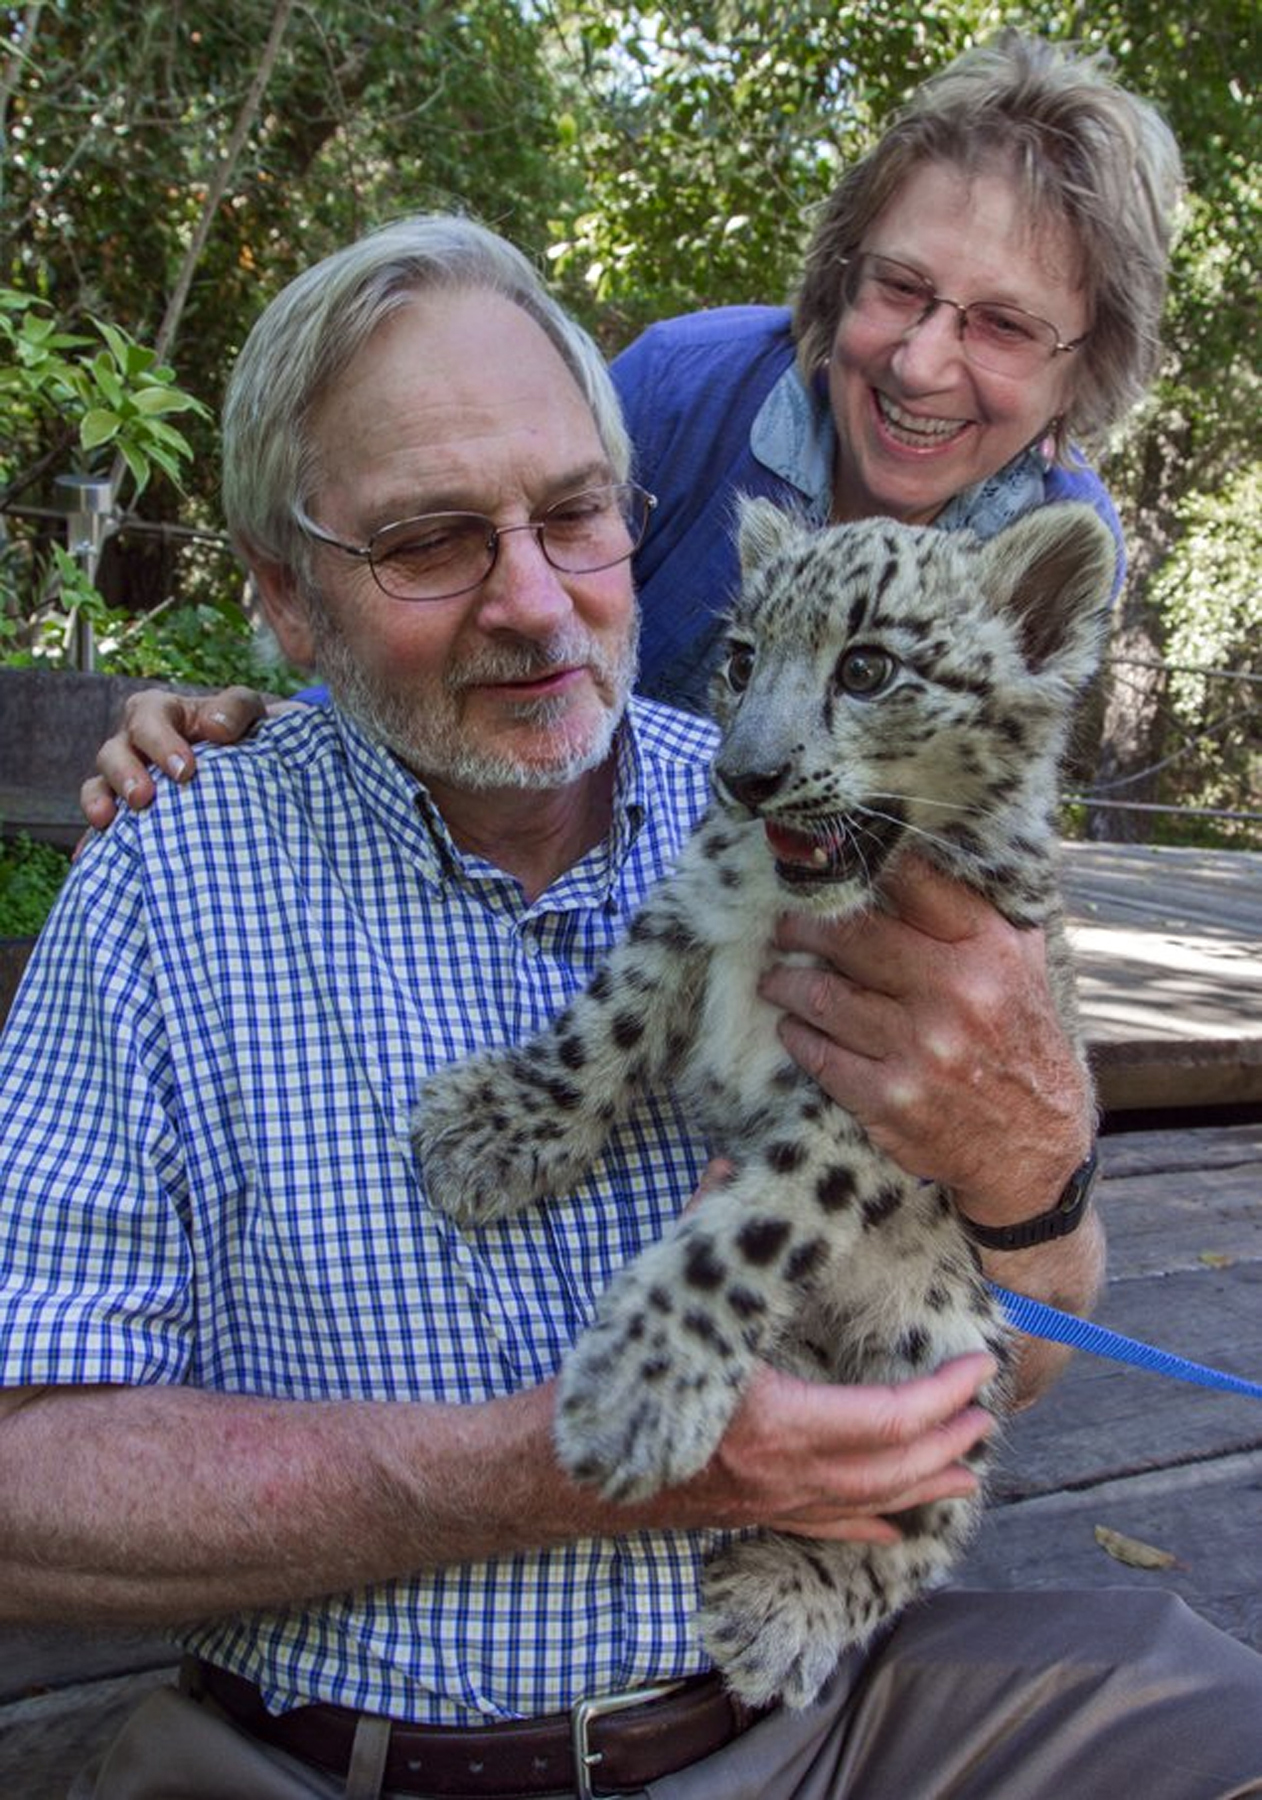 Rodney Jackson and Darla Hillard with snow leopard cub, Jackson. Photo credit: Robbi Pengally